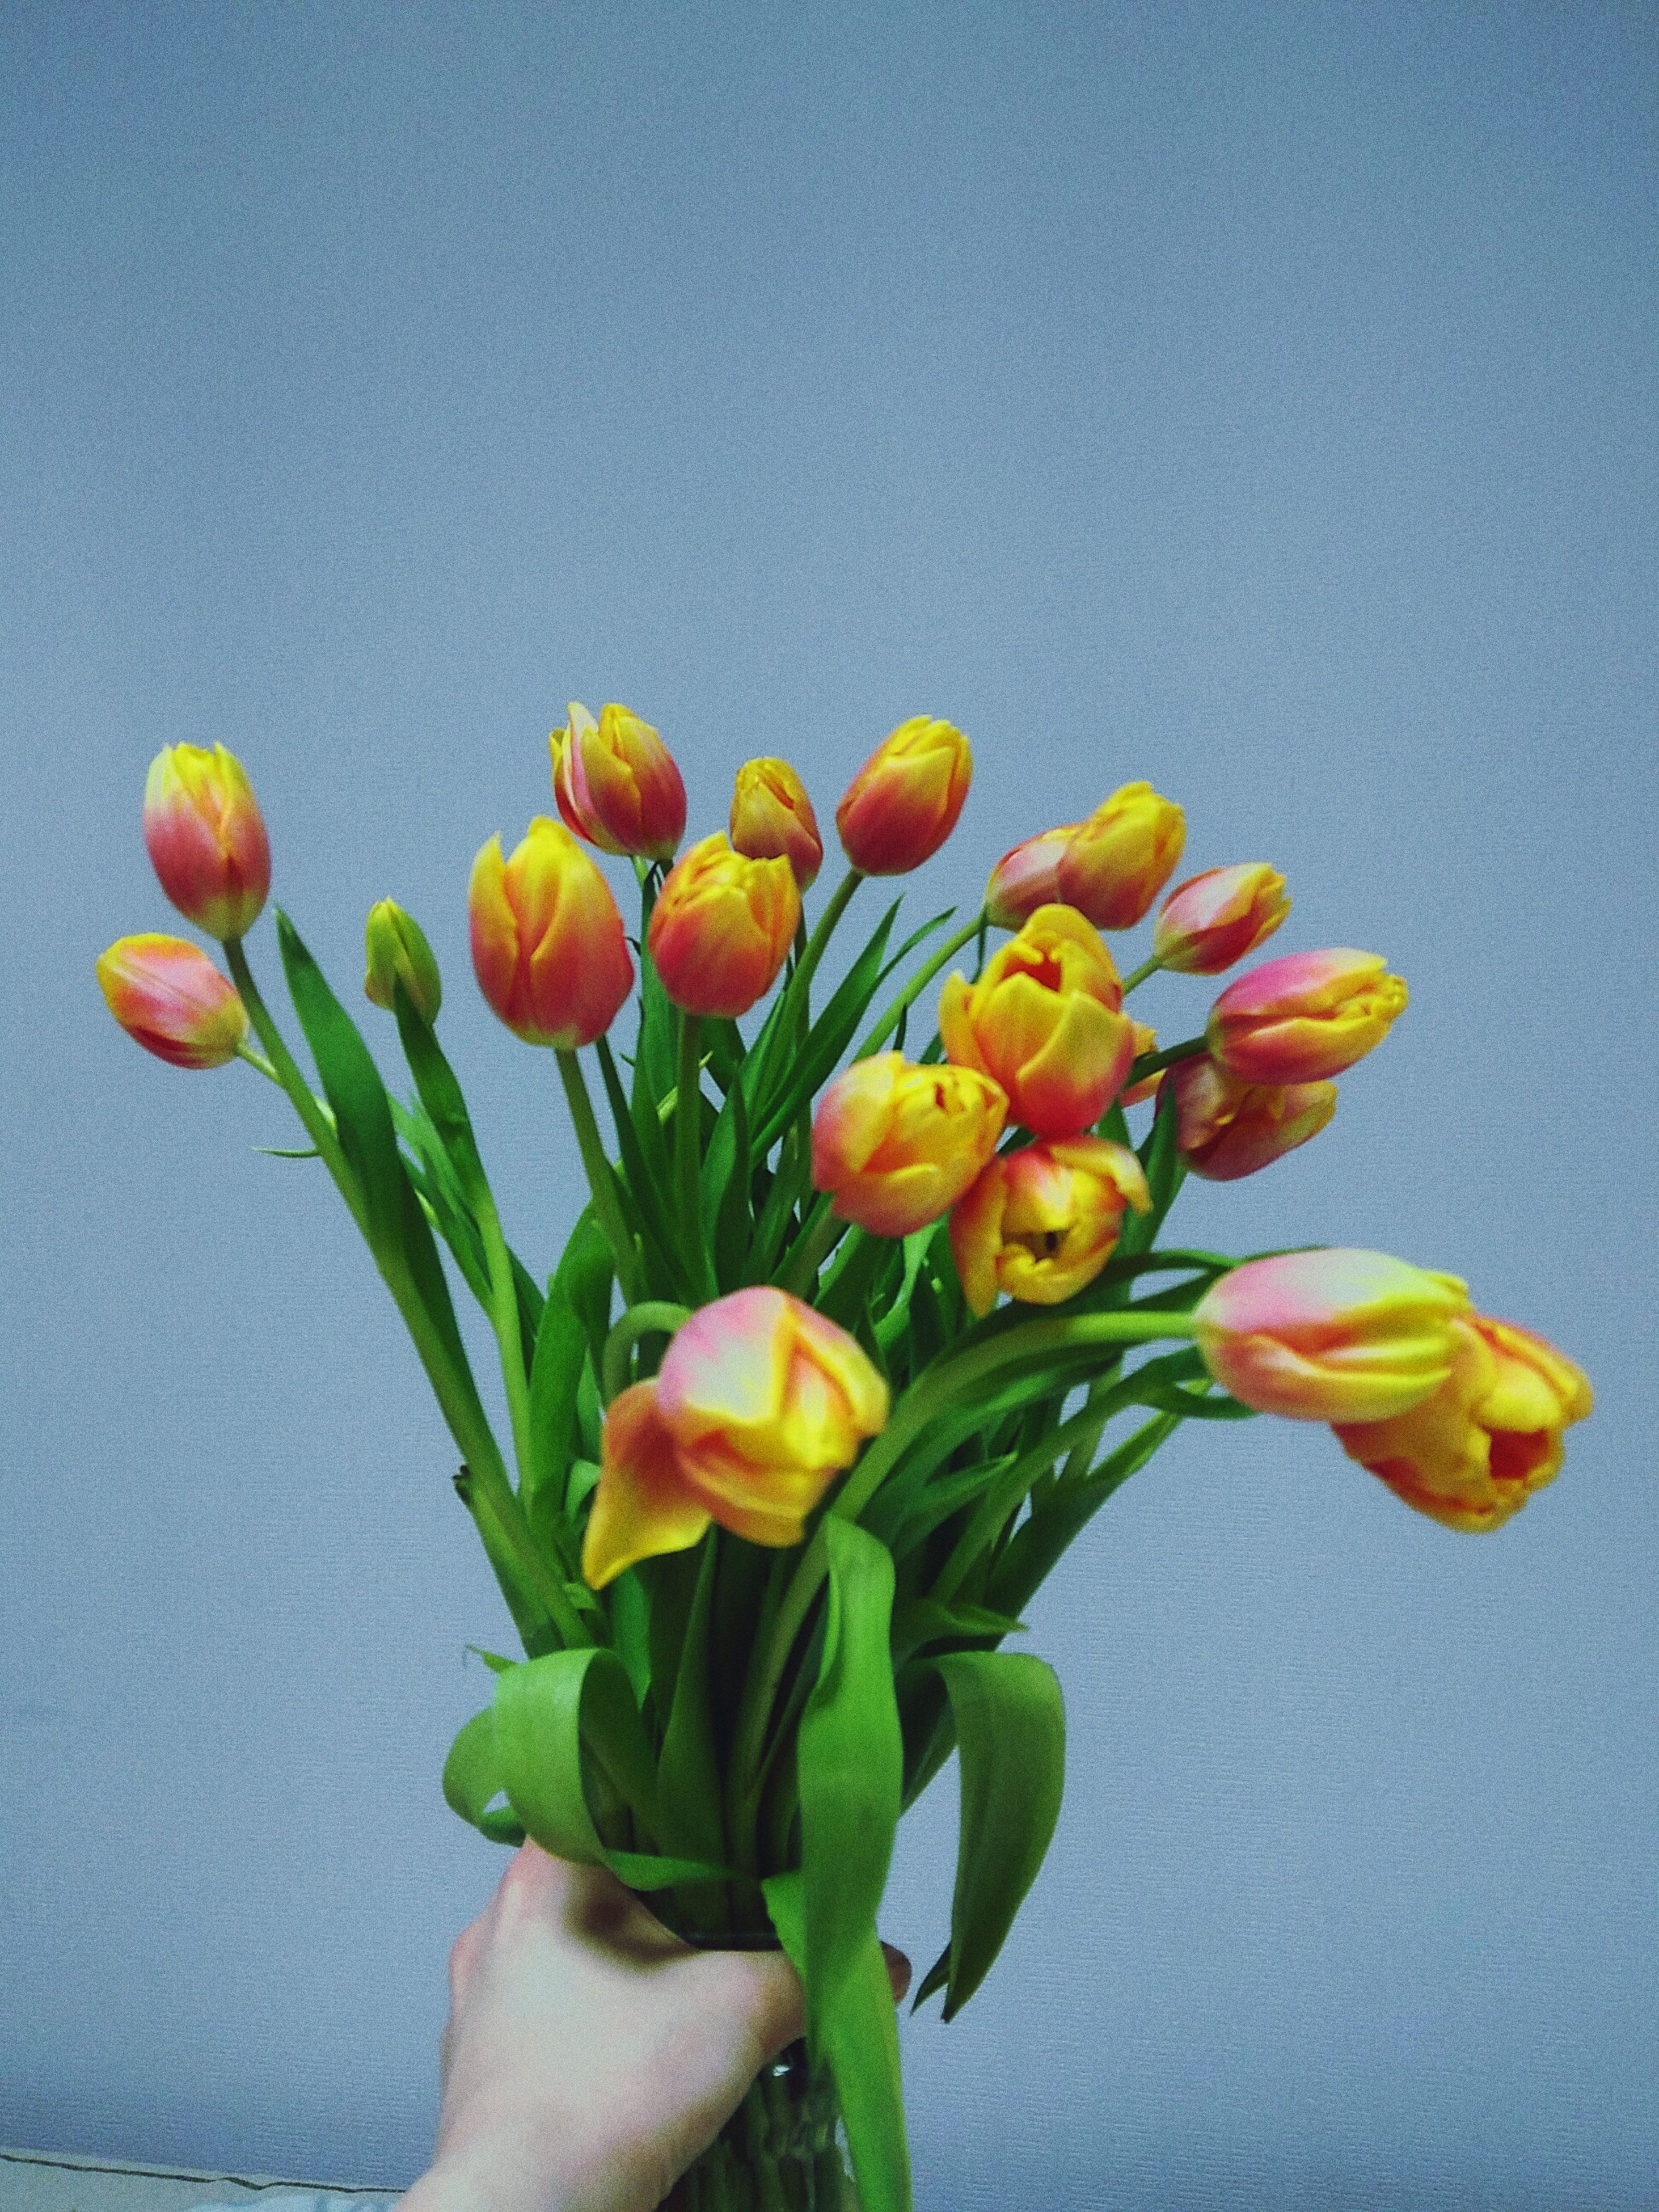 flower, freshness, beauty in nature, fragility, nature, close-up, plant, tulip, petal, growth, day, no people, flower head, outdoors